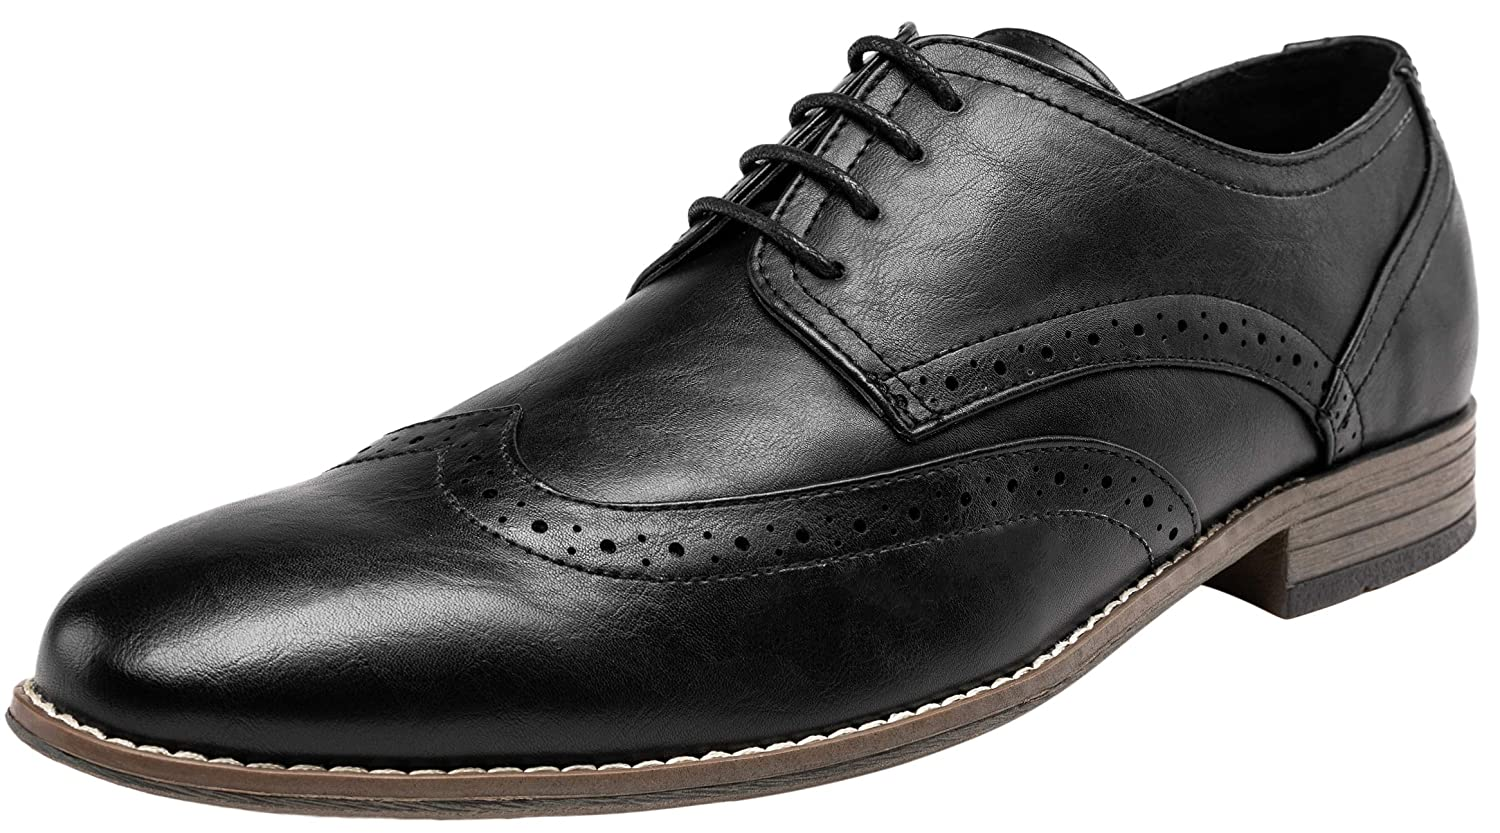 7e42c94302c Amazon.com | JOUSEN Men's Oxford Plain Toe Dress Shoes Classic Formal Derby  Shoes | Oxfords